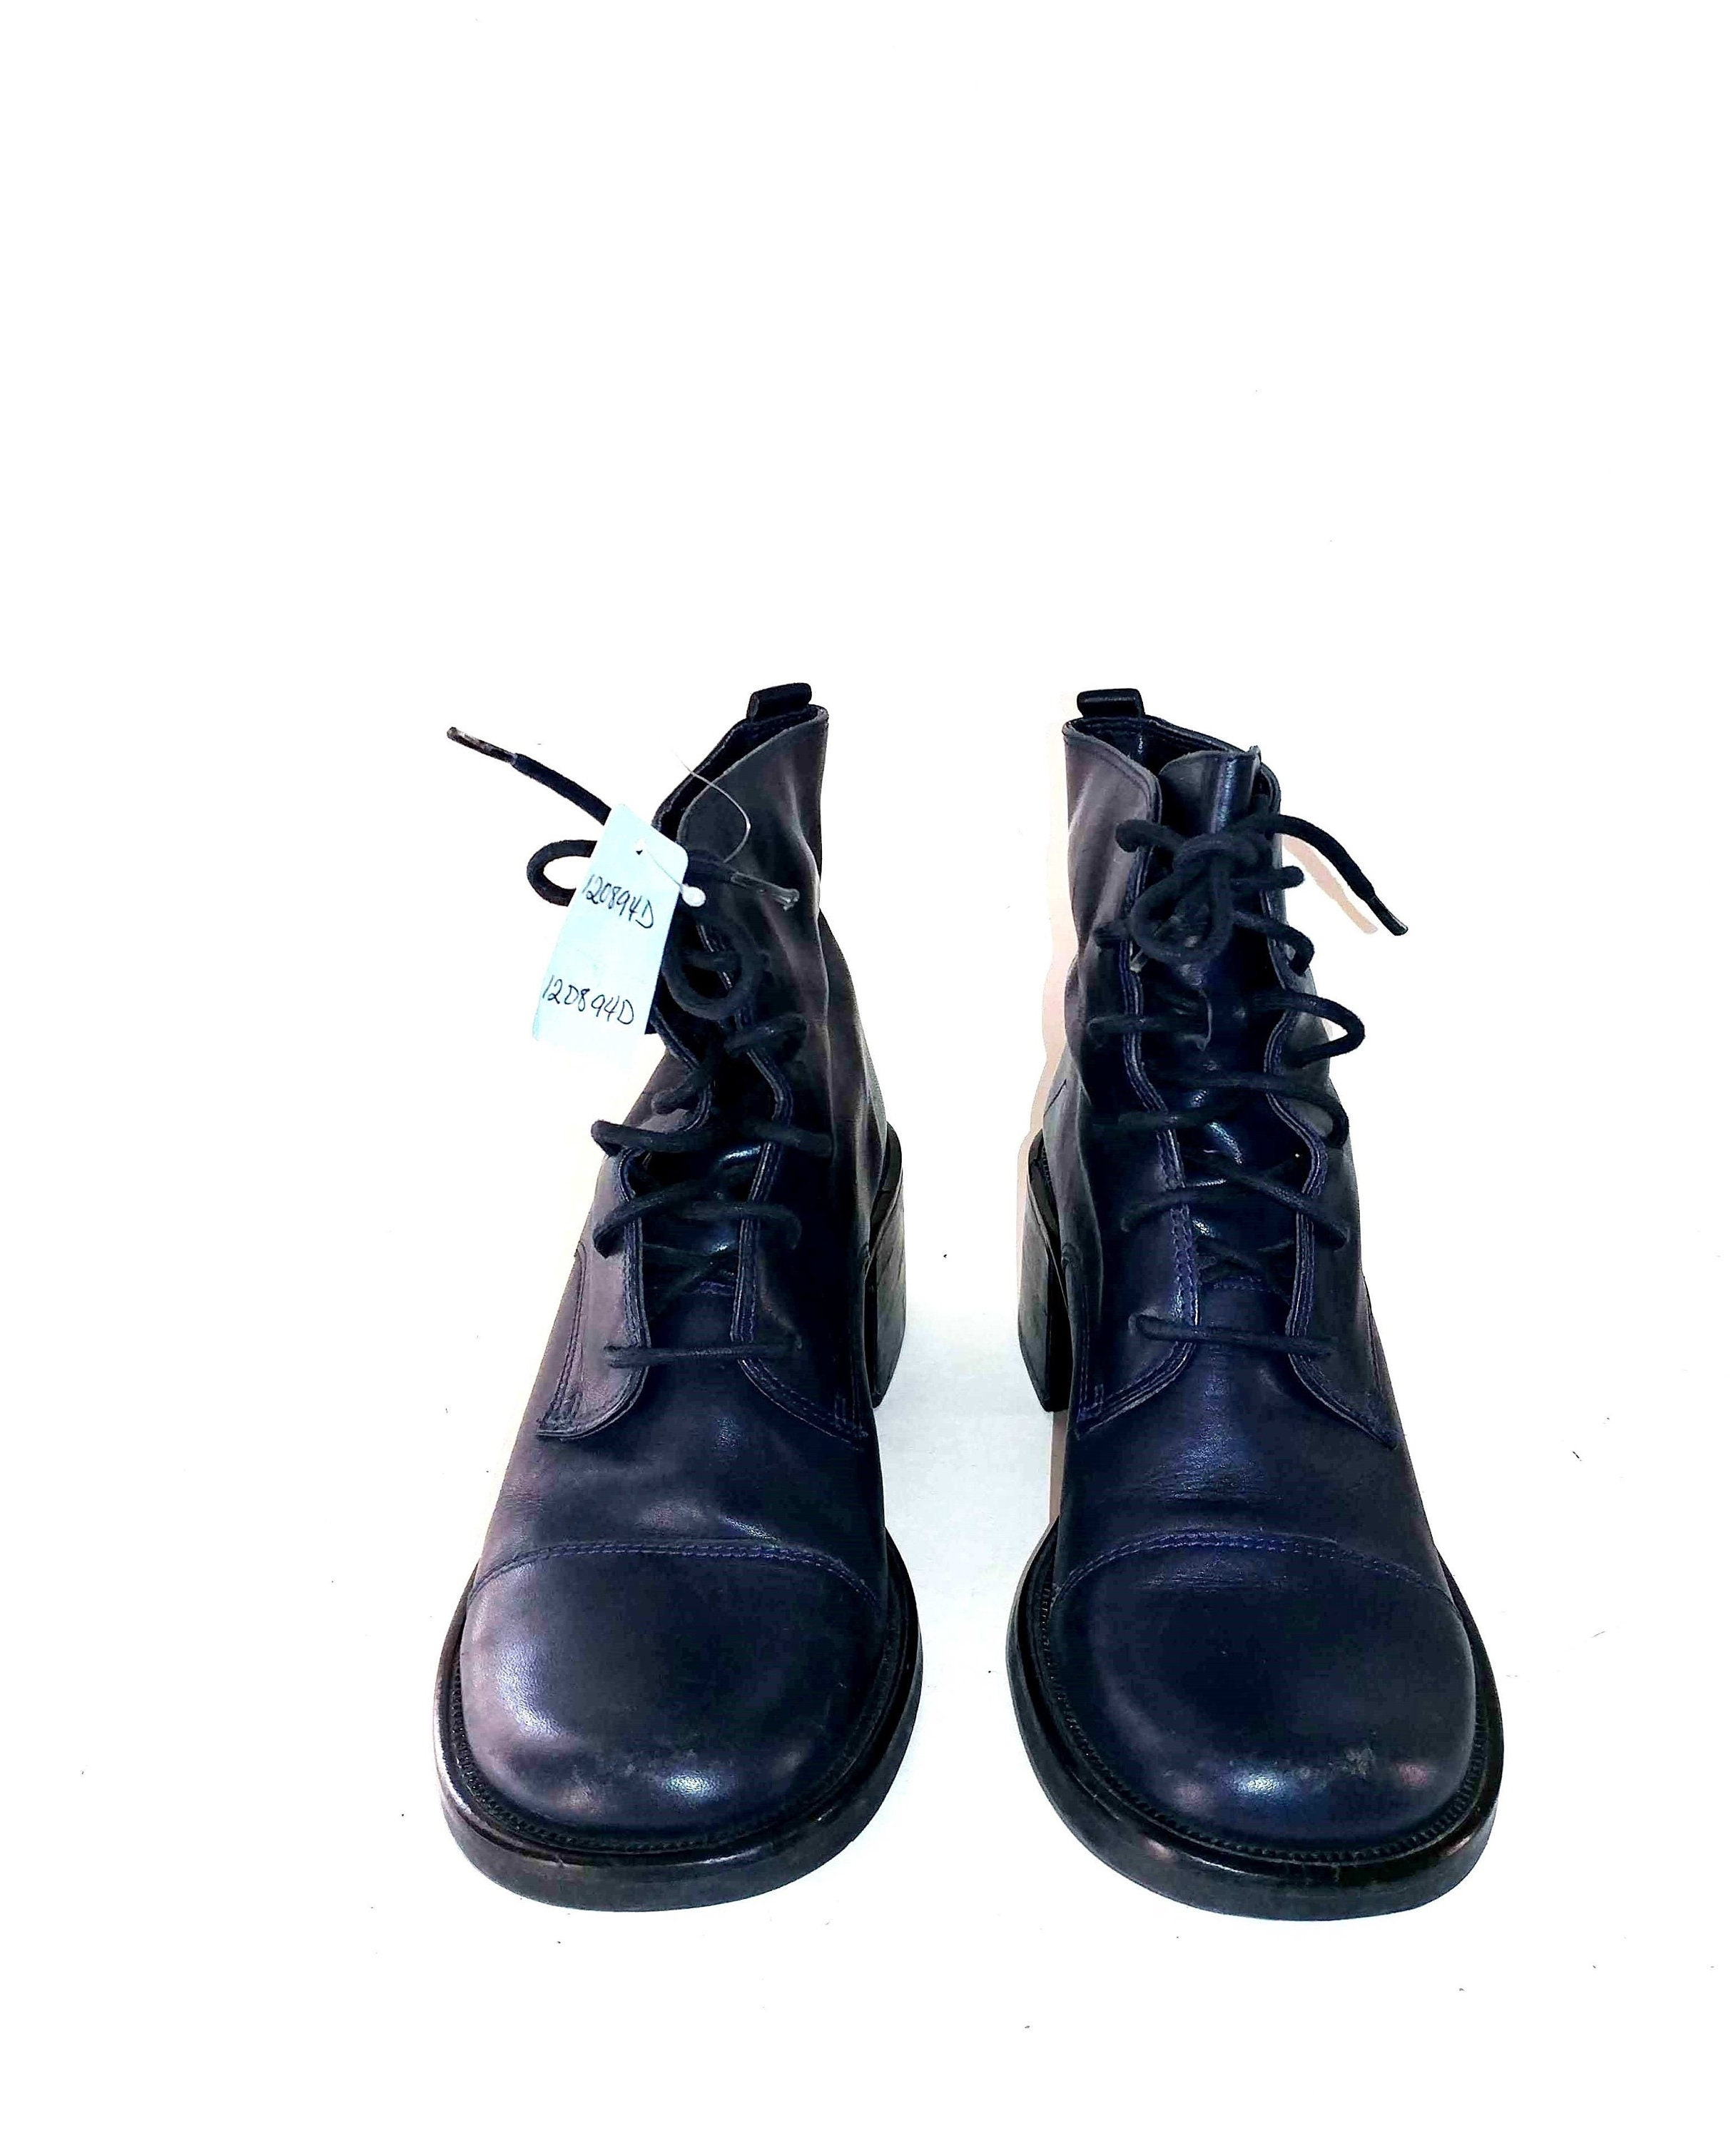 fbcbd2411b092 1990's Vintage VTG Diba Dutch Navy Blue Leather Lace Up Wooden Chunky  Stacked Heels Boots Shoes 6.5M